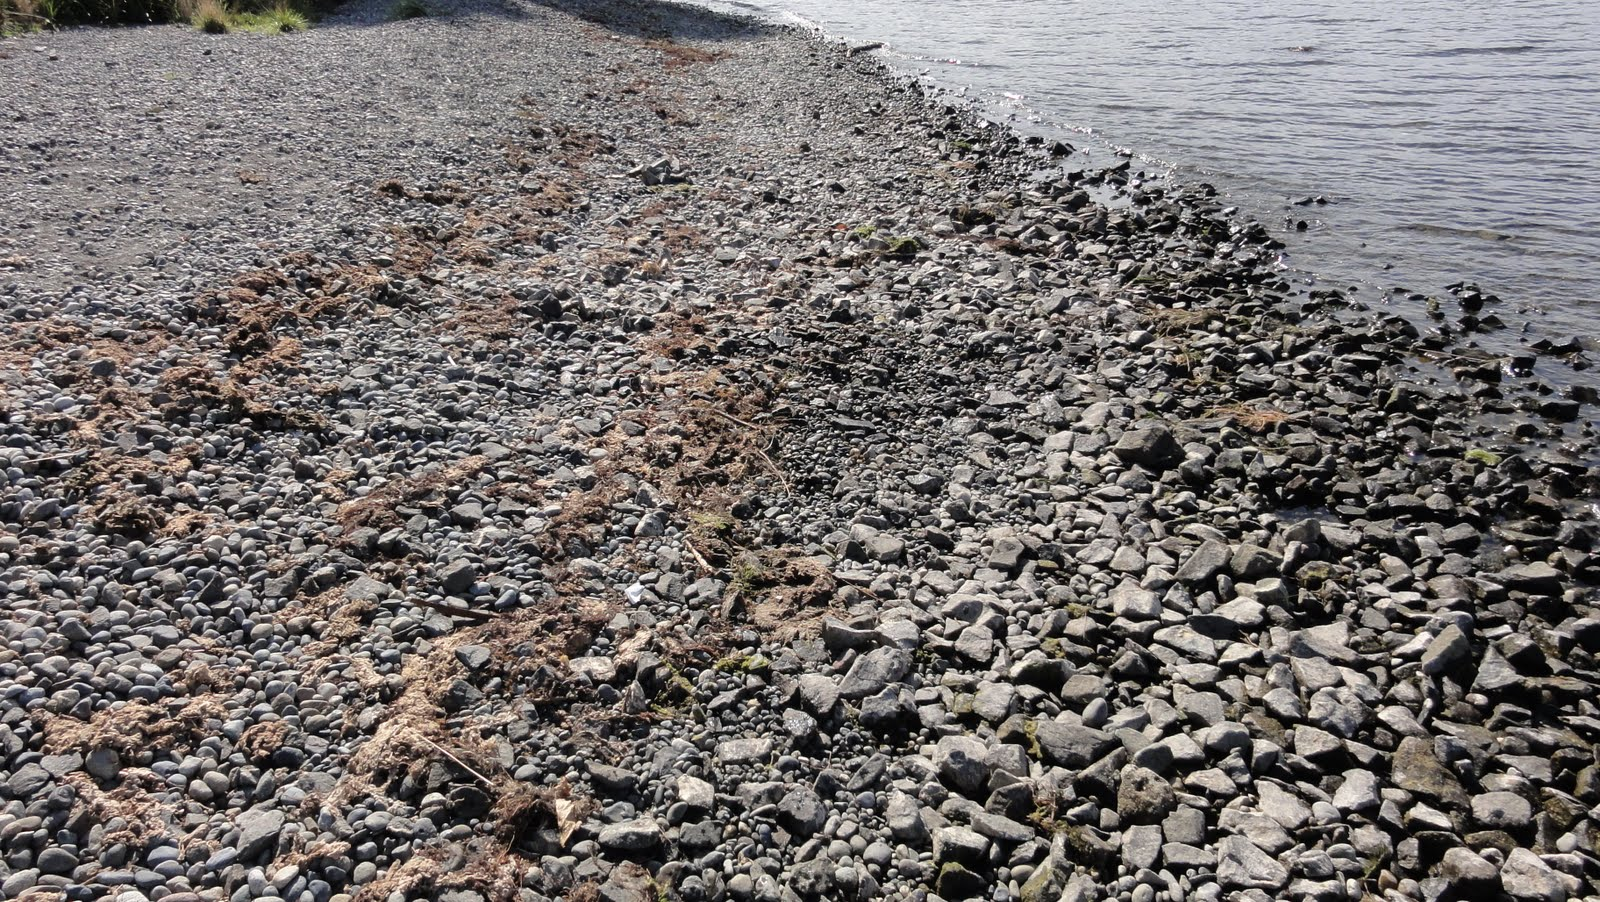 Image shows a rocky beach.